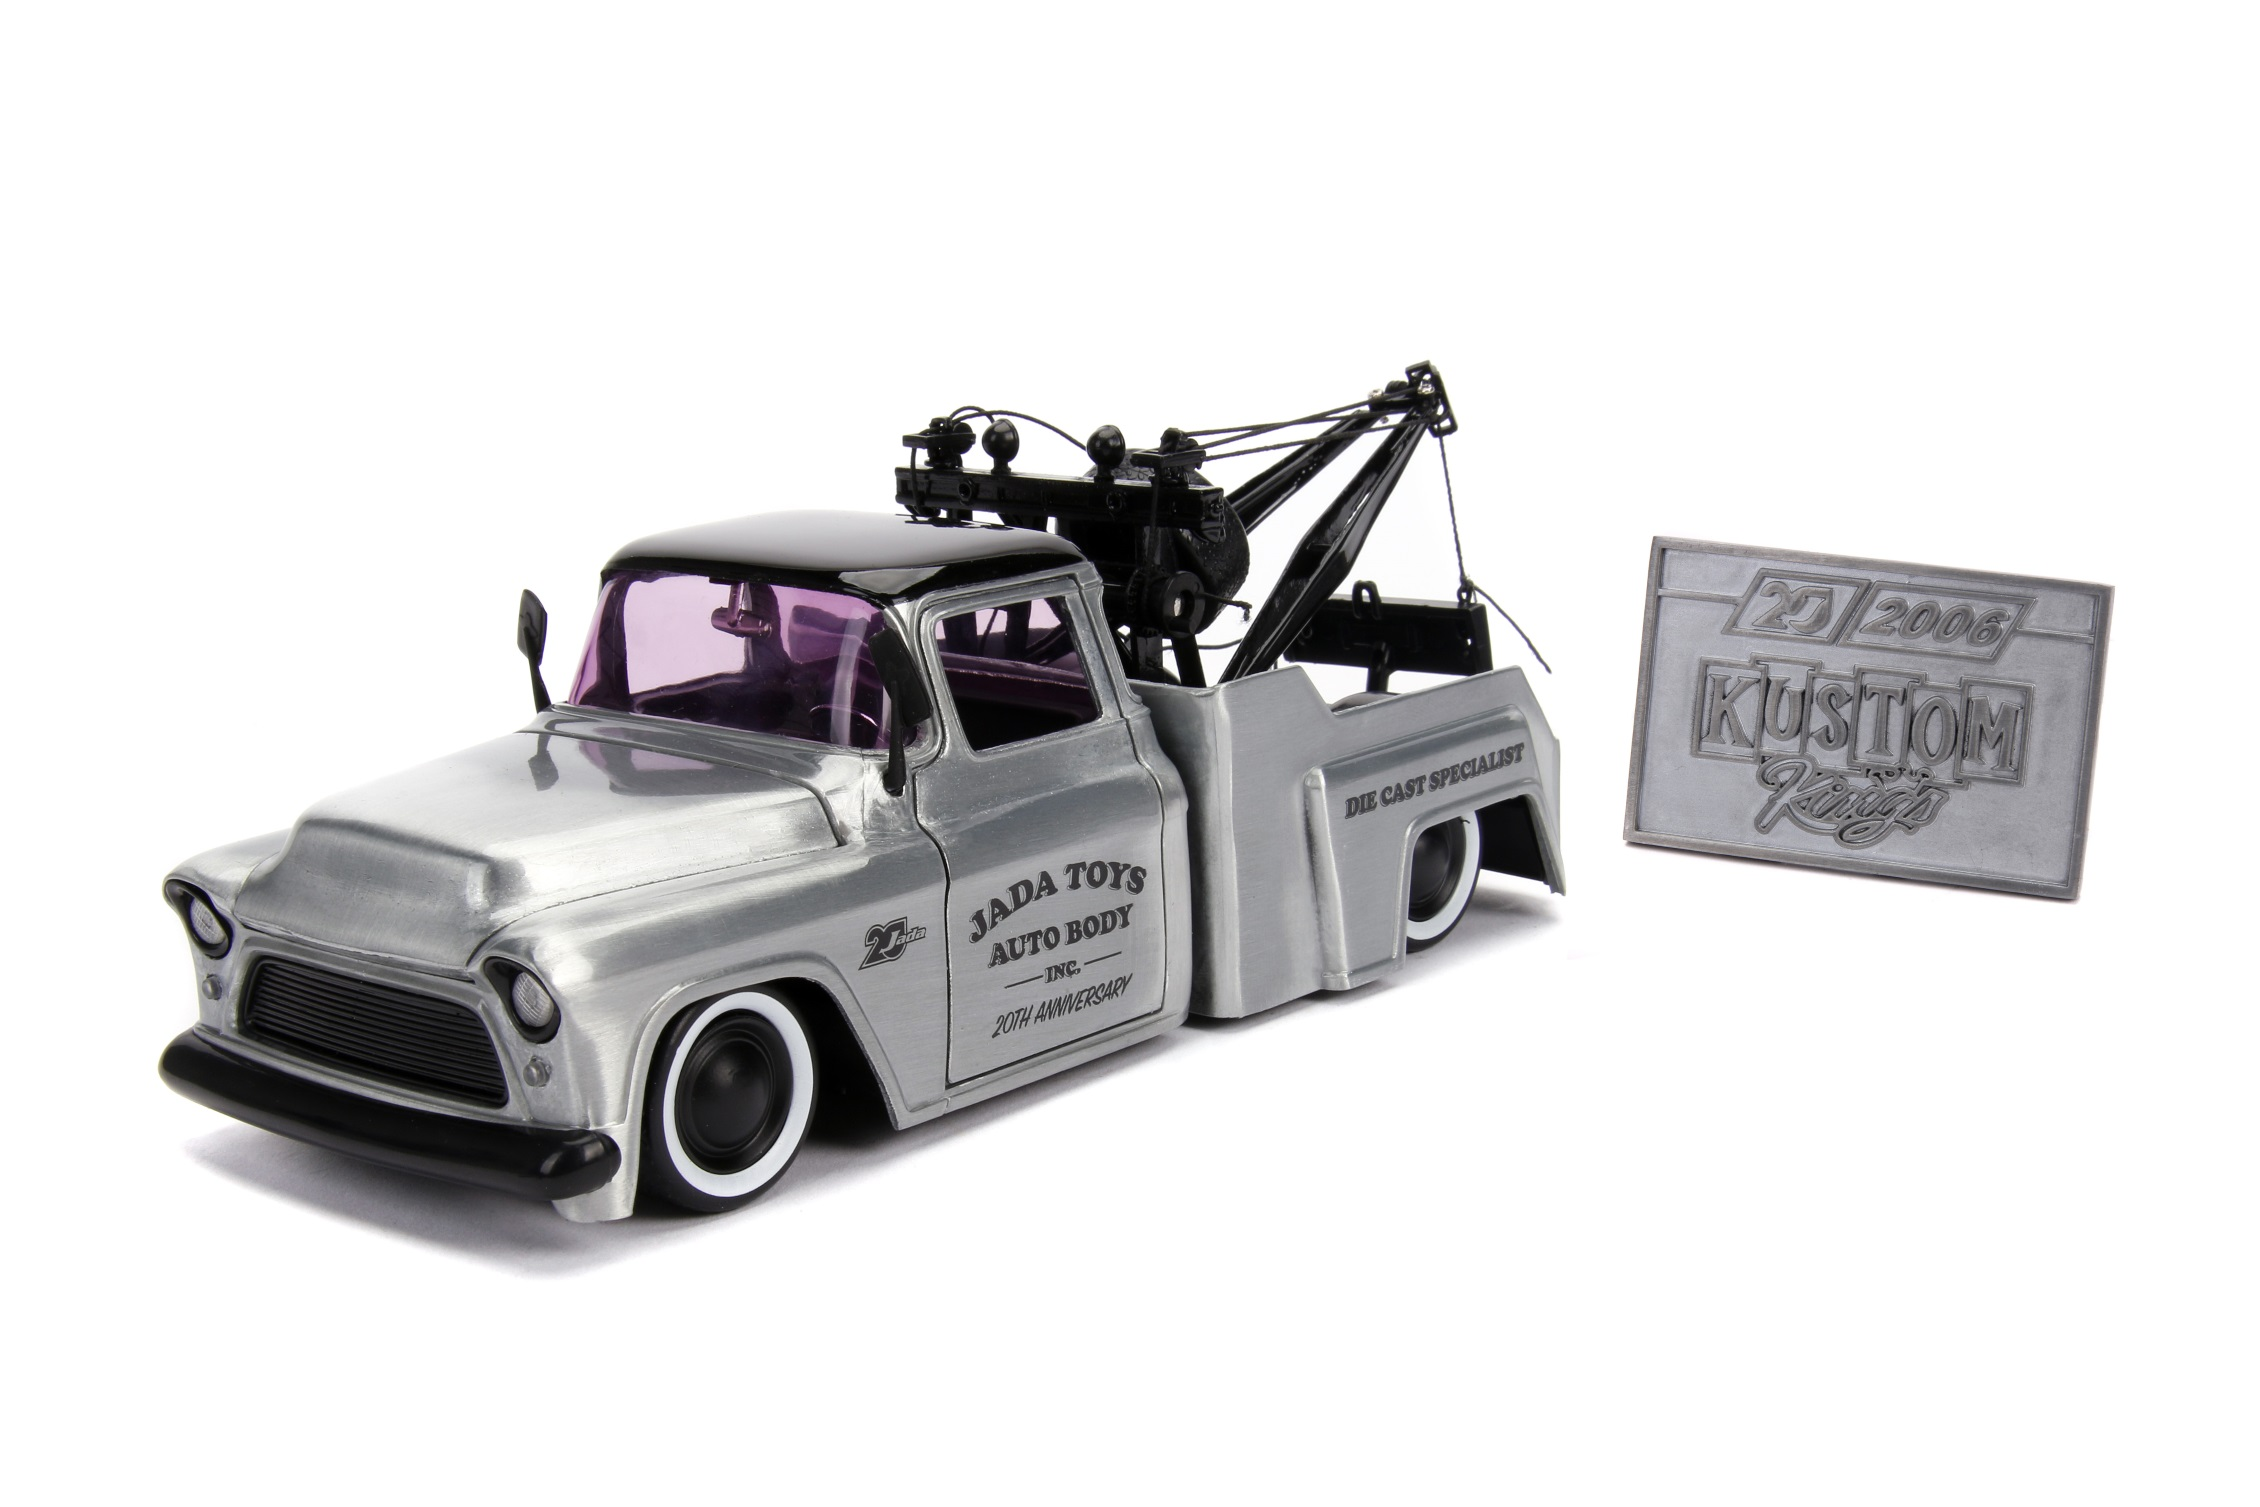 1955 Chevy Stepside Tow Truck - Wave 1